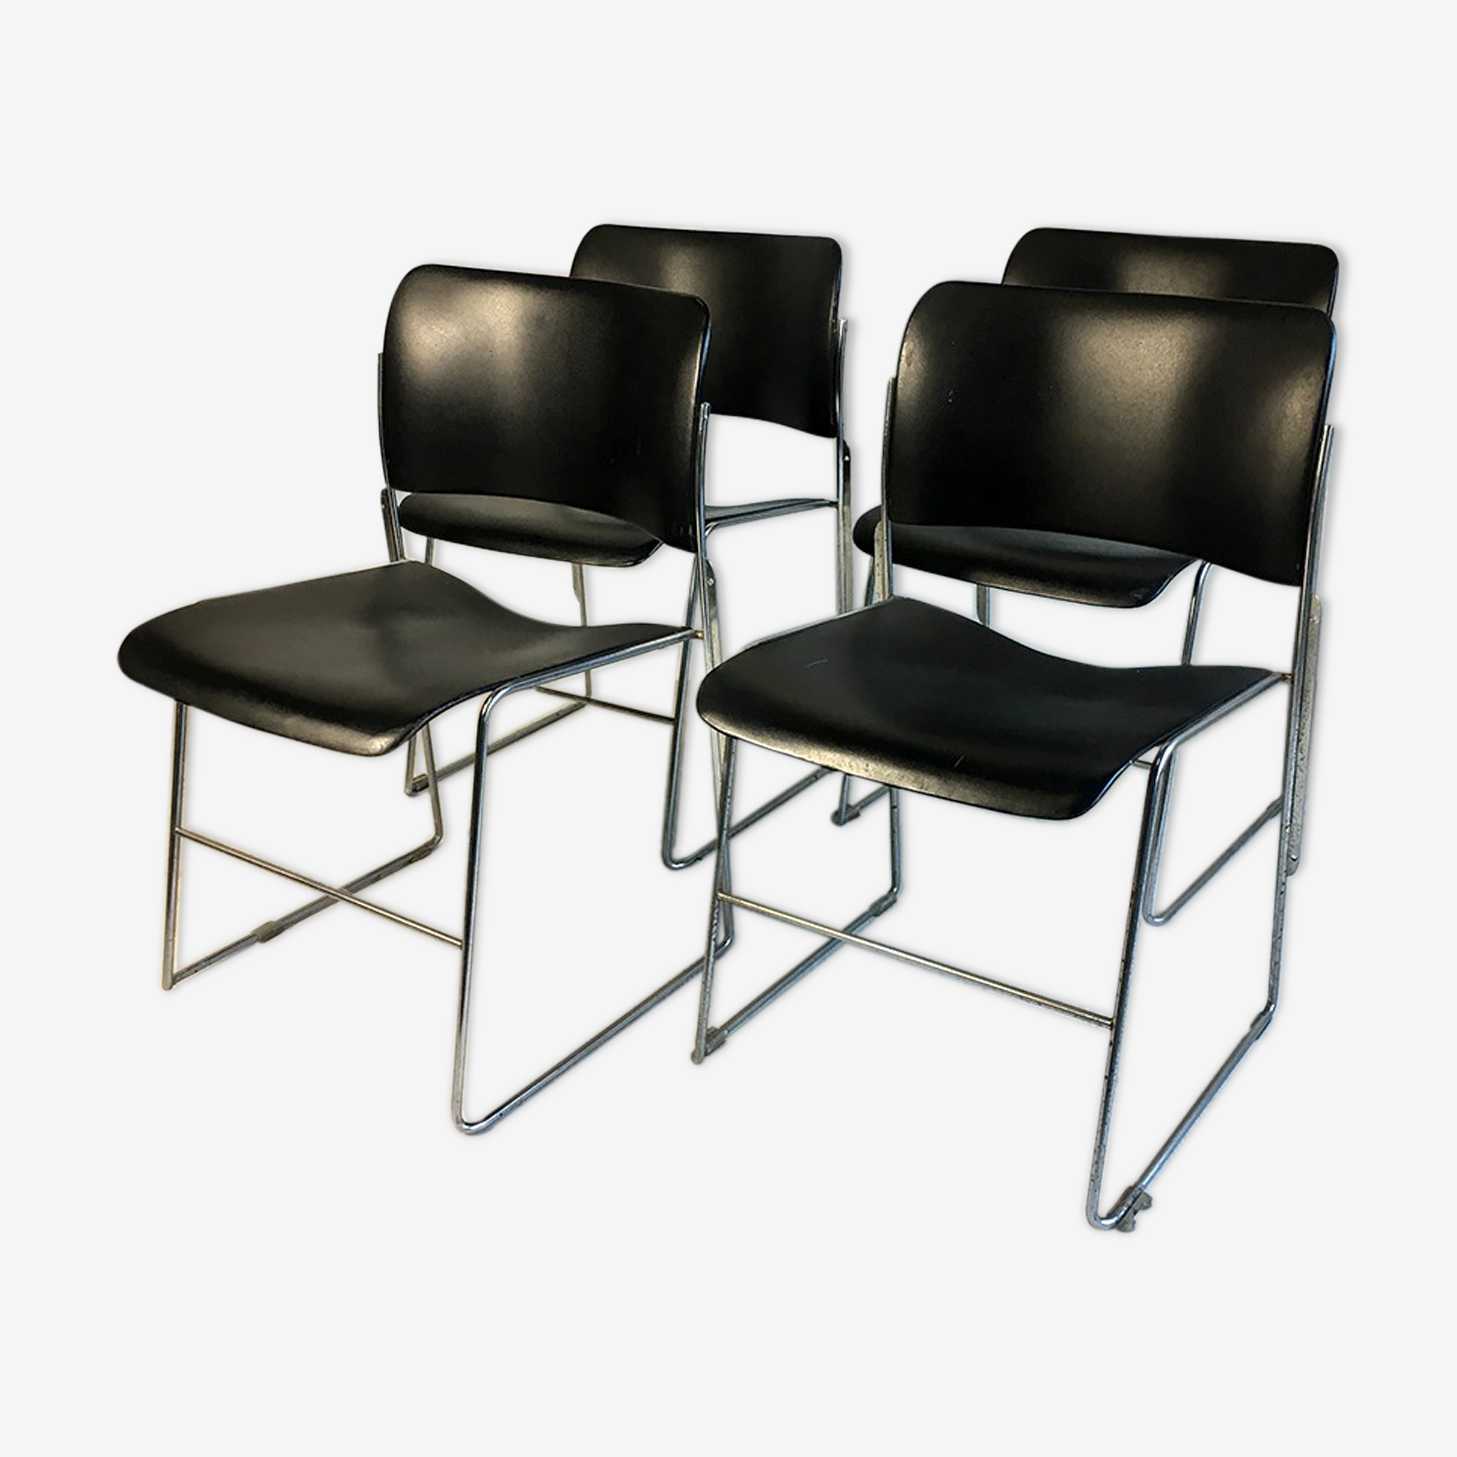 Set of 4 chairs 40/4 by David Rowland for General Fireproofing